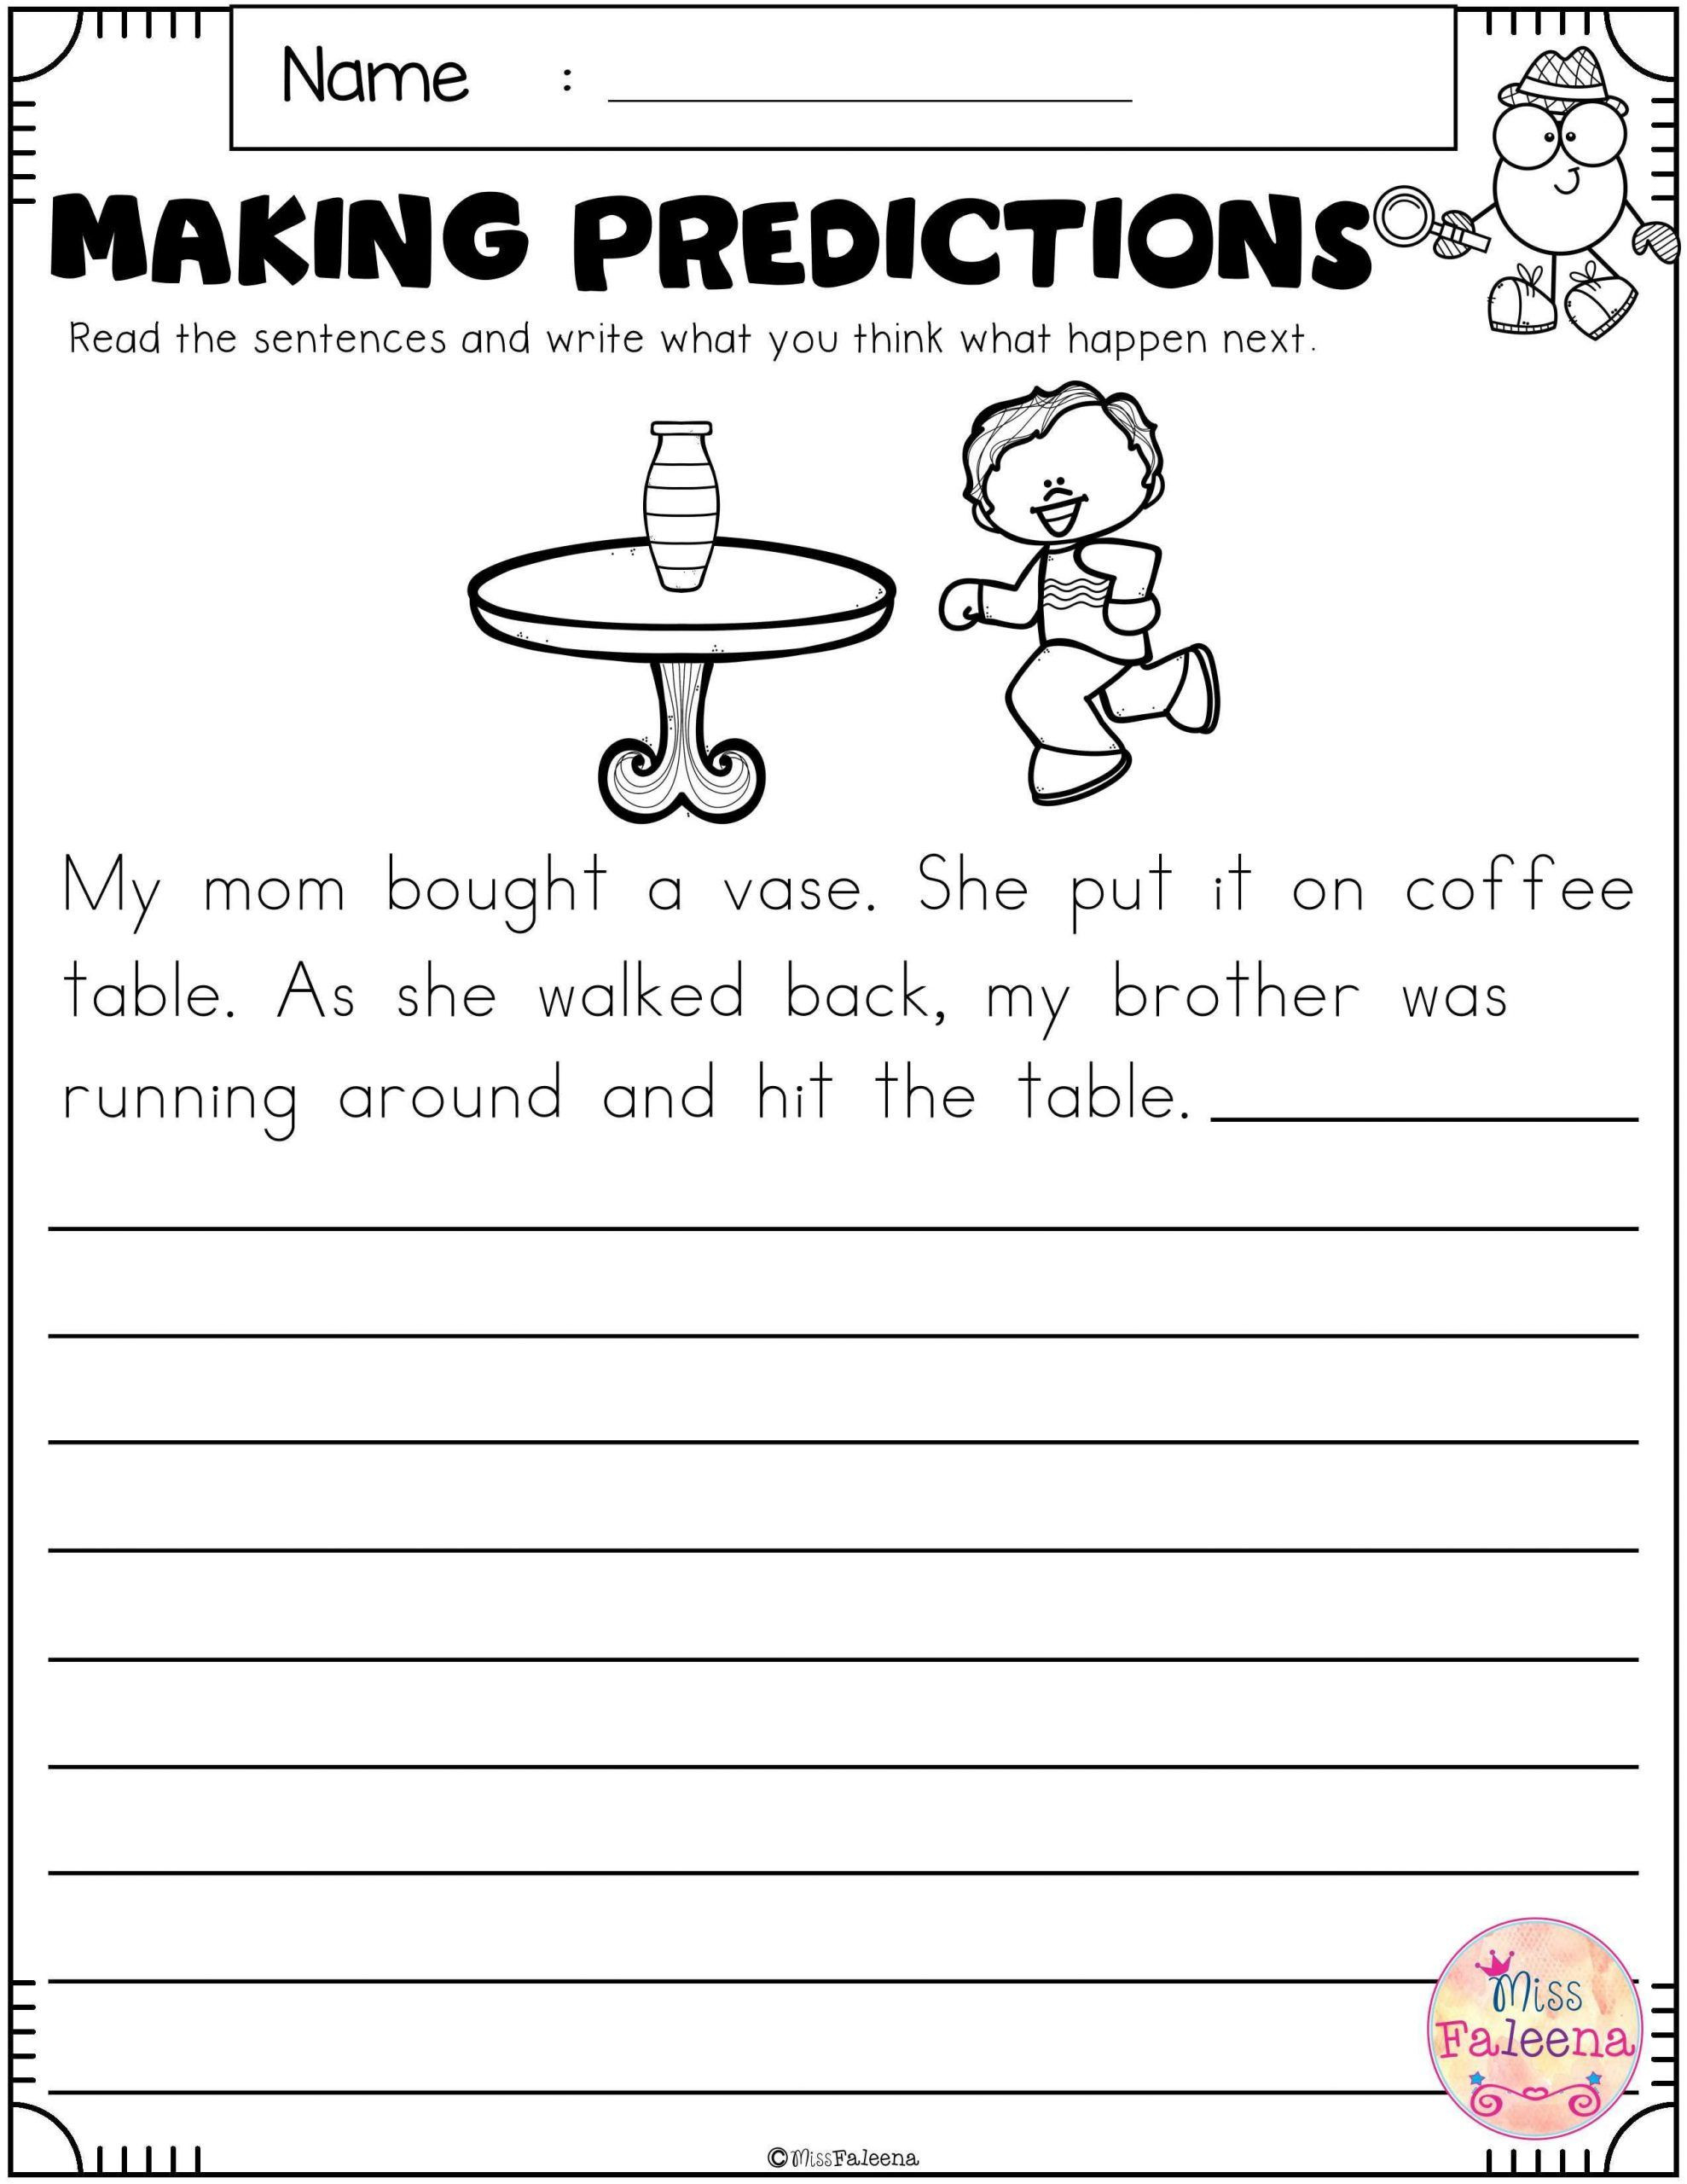 Making Predictions Worksheets 3rd Grade in 2020